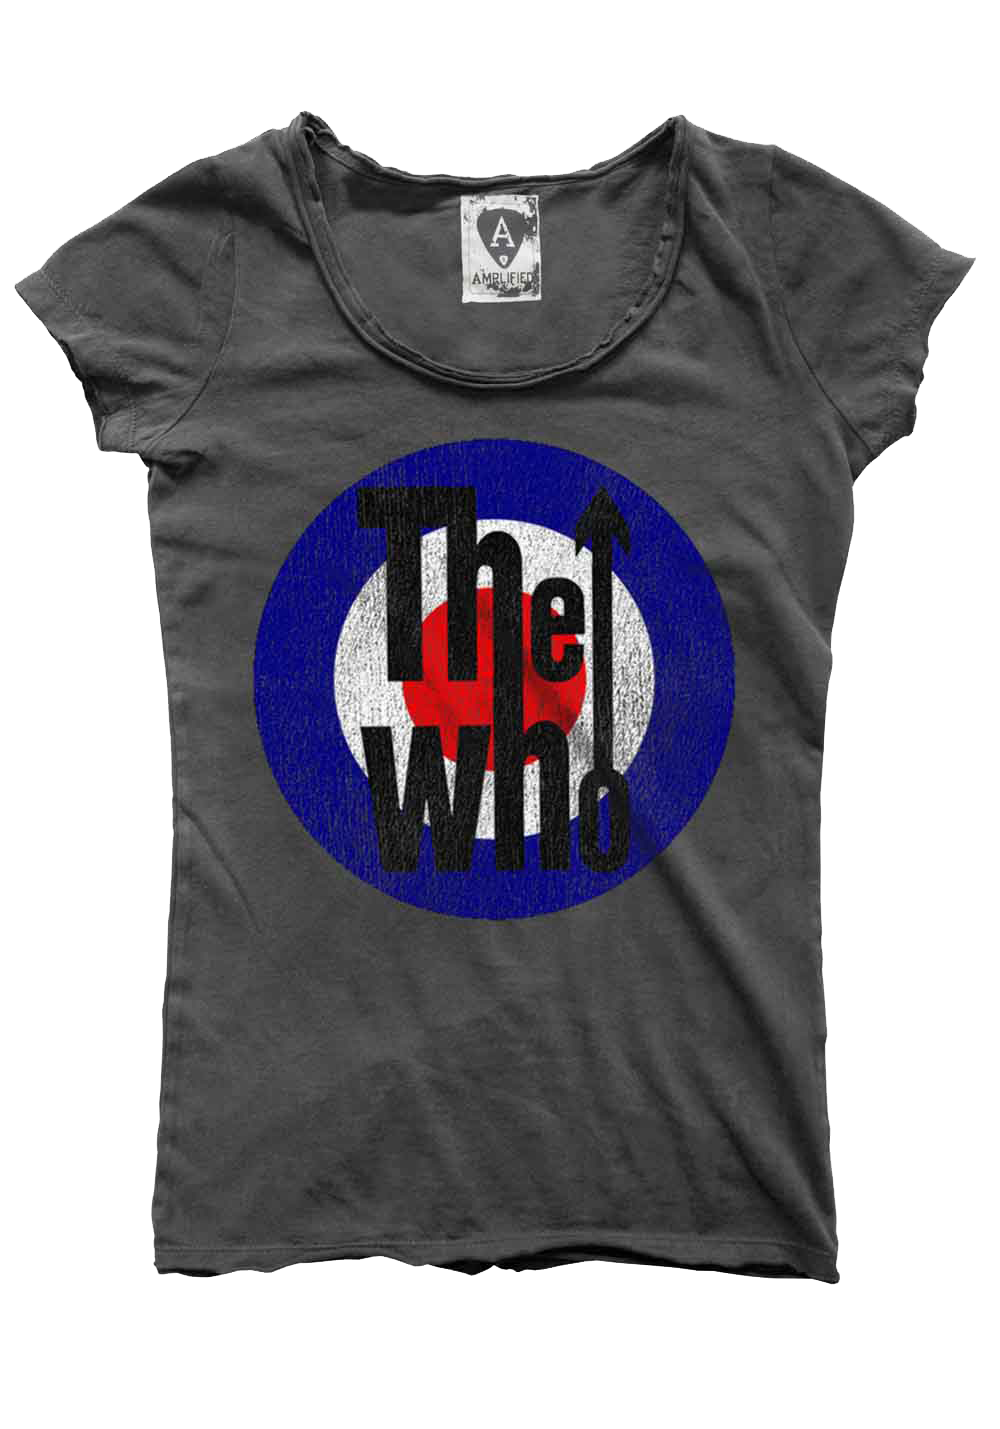 the who t-shirt - Buscar con Google | T-SHIRTS | Pinterest | The ...